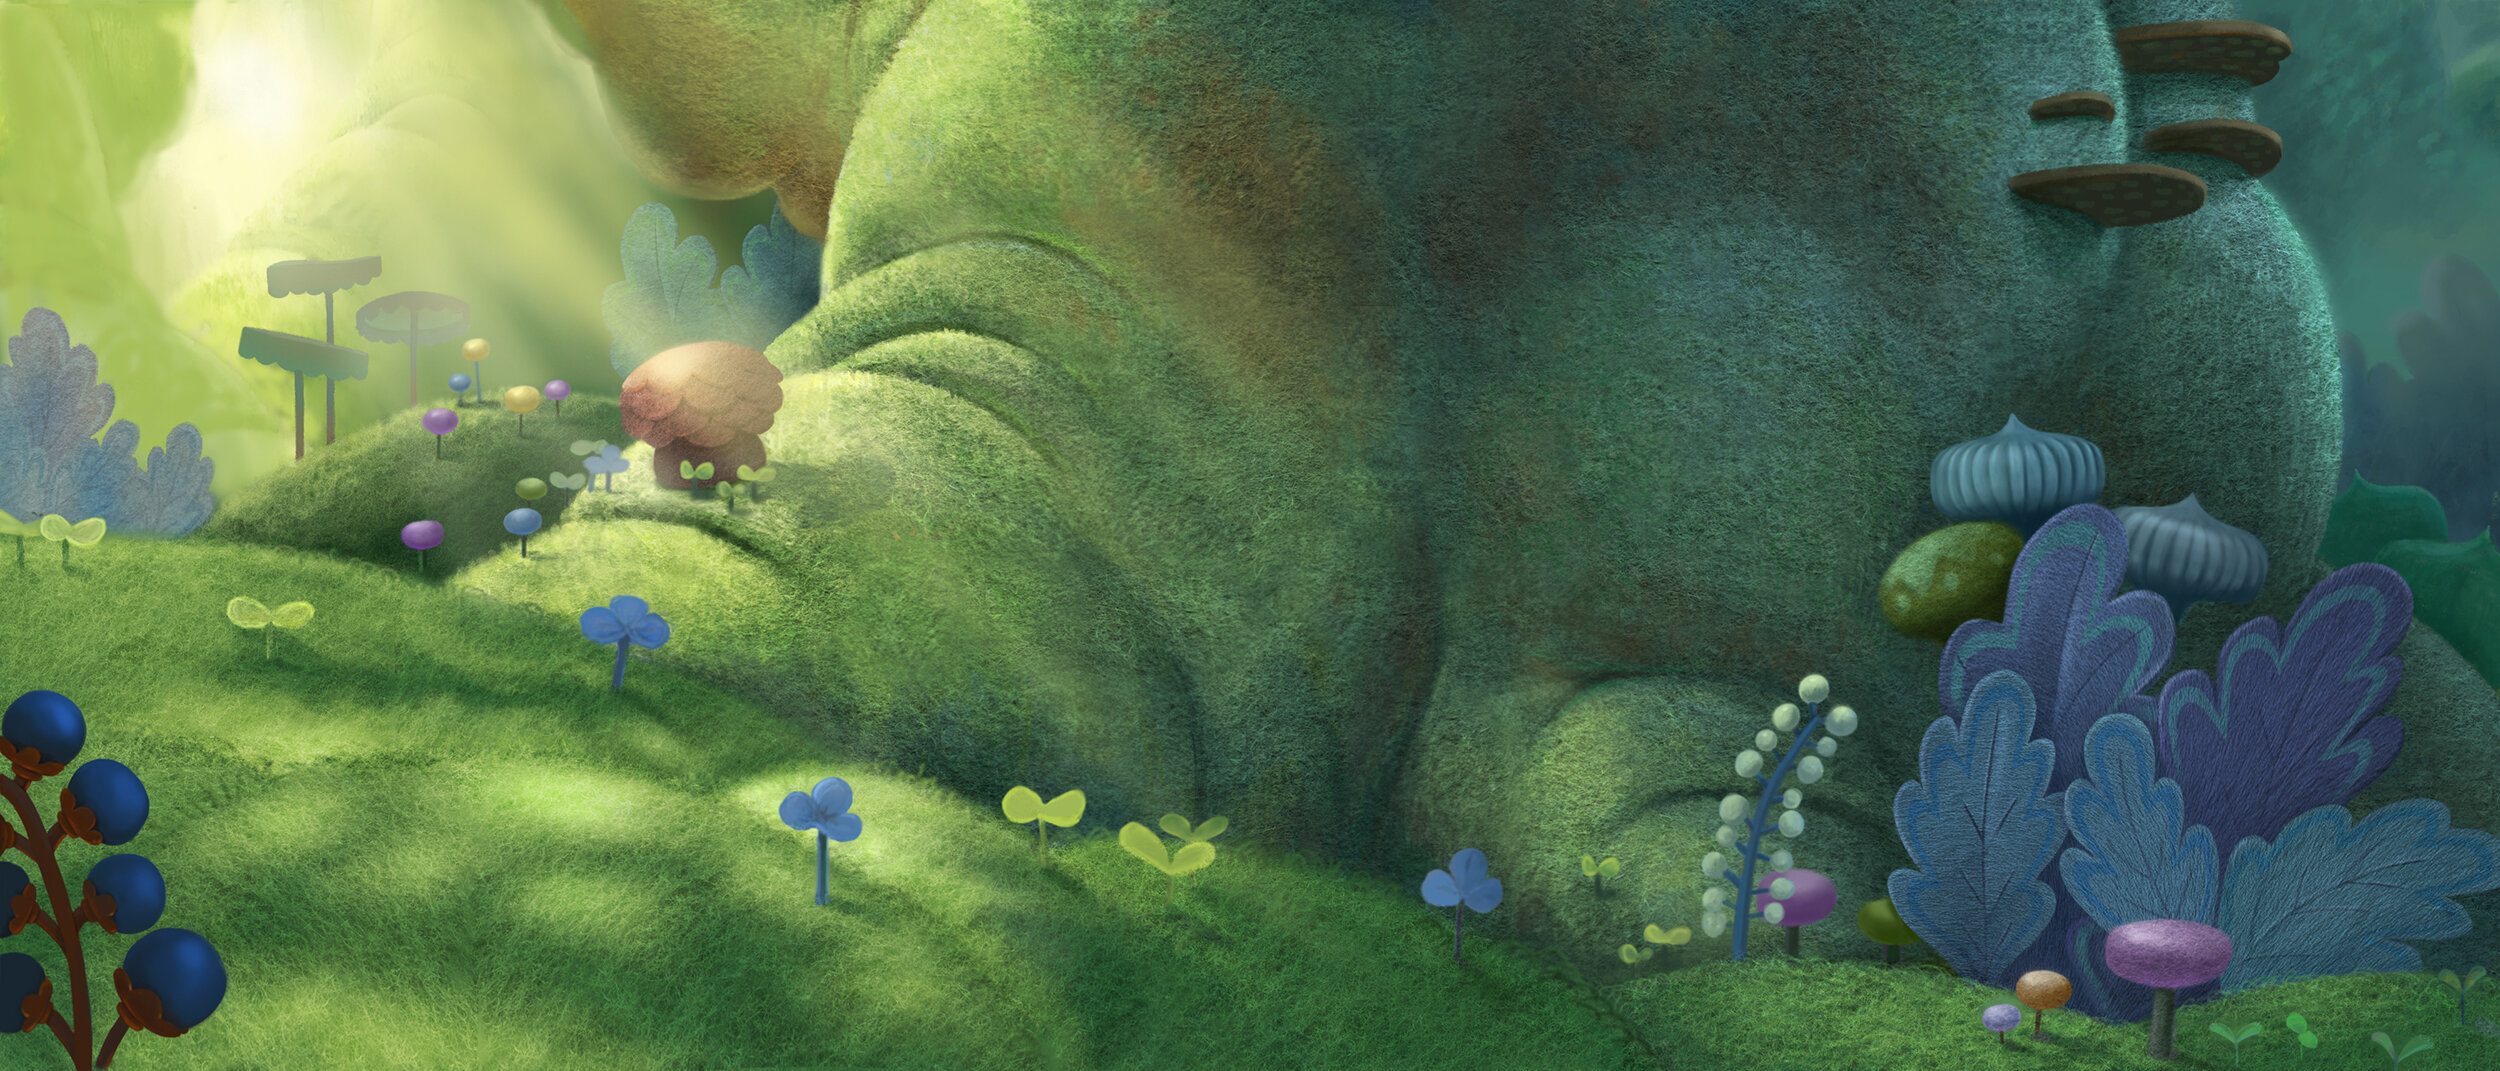 trolls-forest-painting-small.jpg